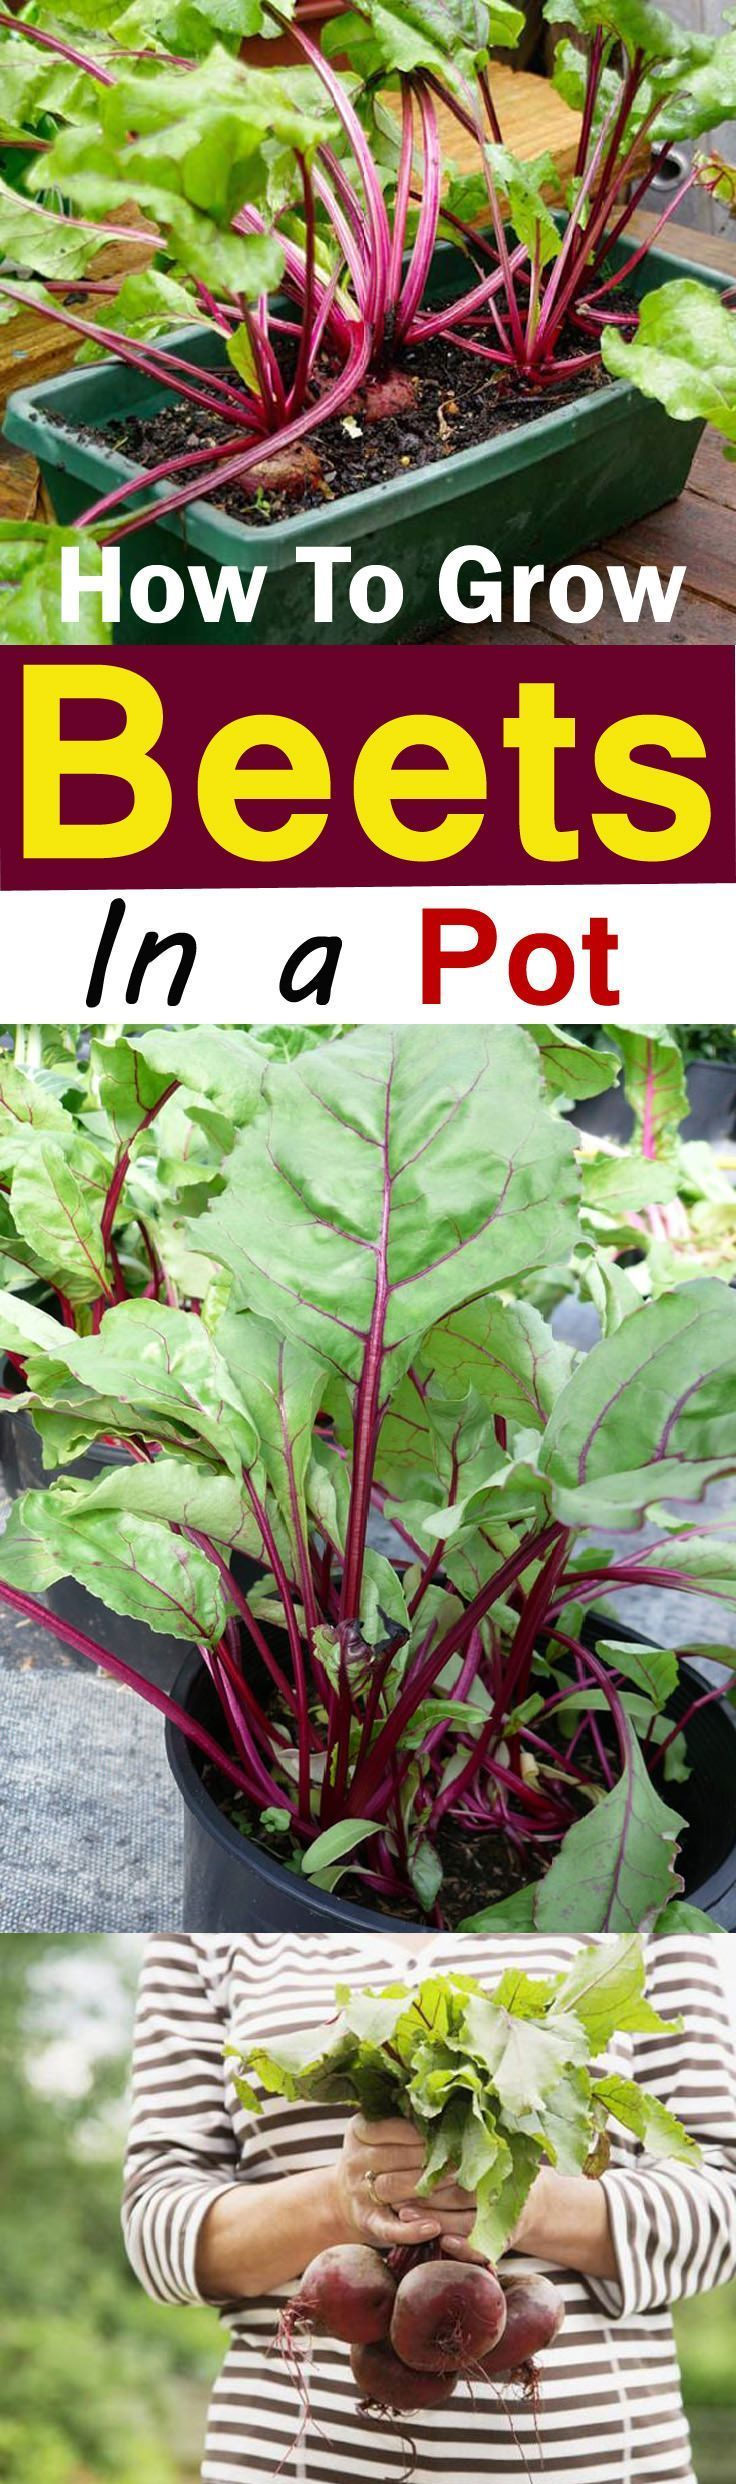 Growing Beets In Containers Is Easy This Quick Growing Vegetable Doesn T Require Much Care And Per Growing Vegetables Indoor Vegetable Gardening Growing Beets